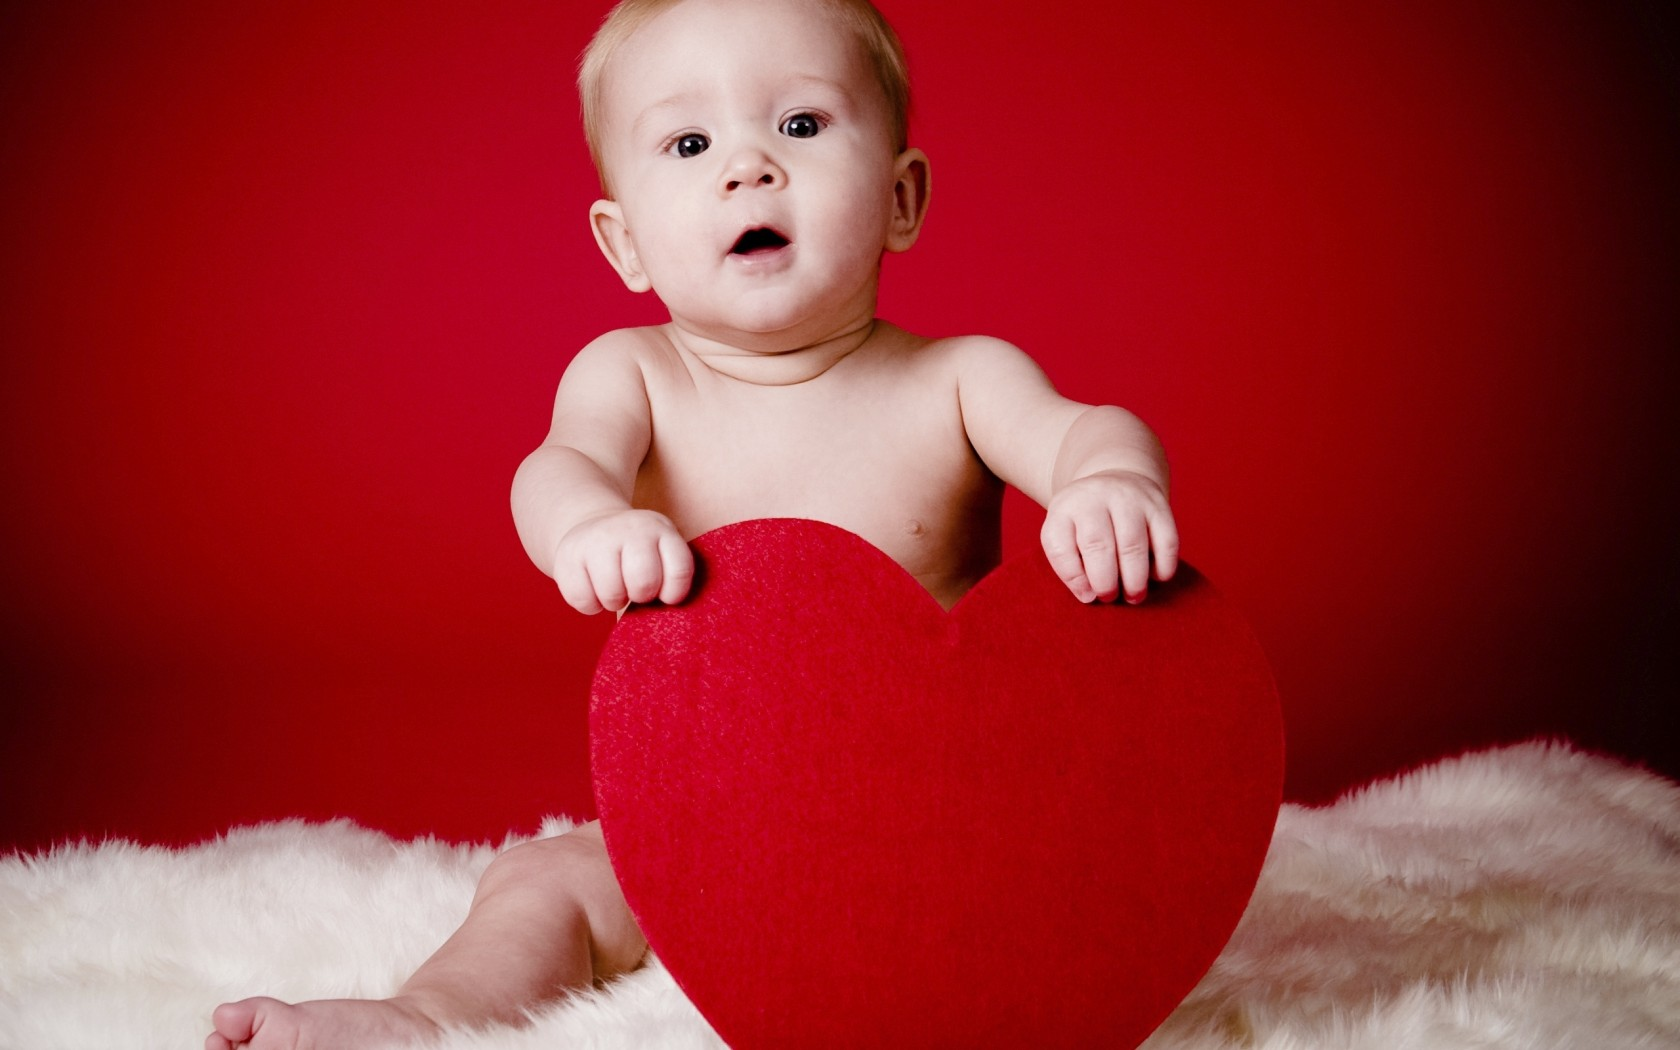 baby holding a red heart wallpapers - 1680x1050 - 198238